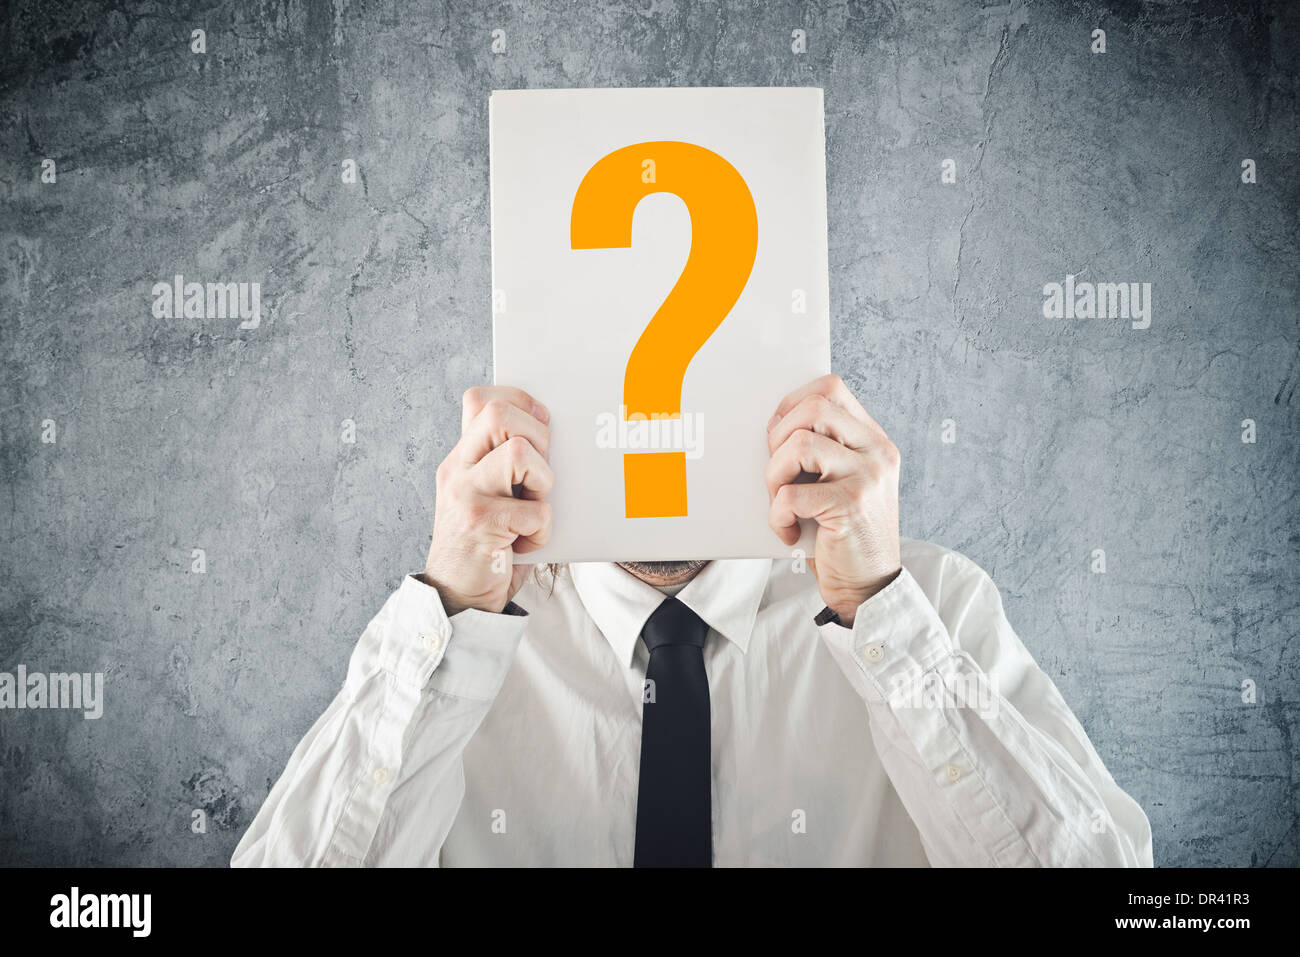 Businessman holding paper with printed question mark in front of his face - Stock Image